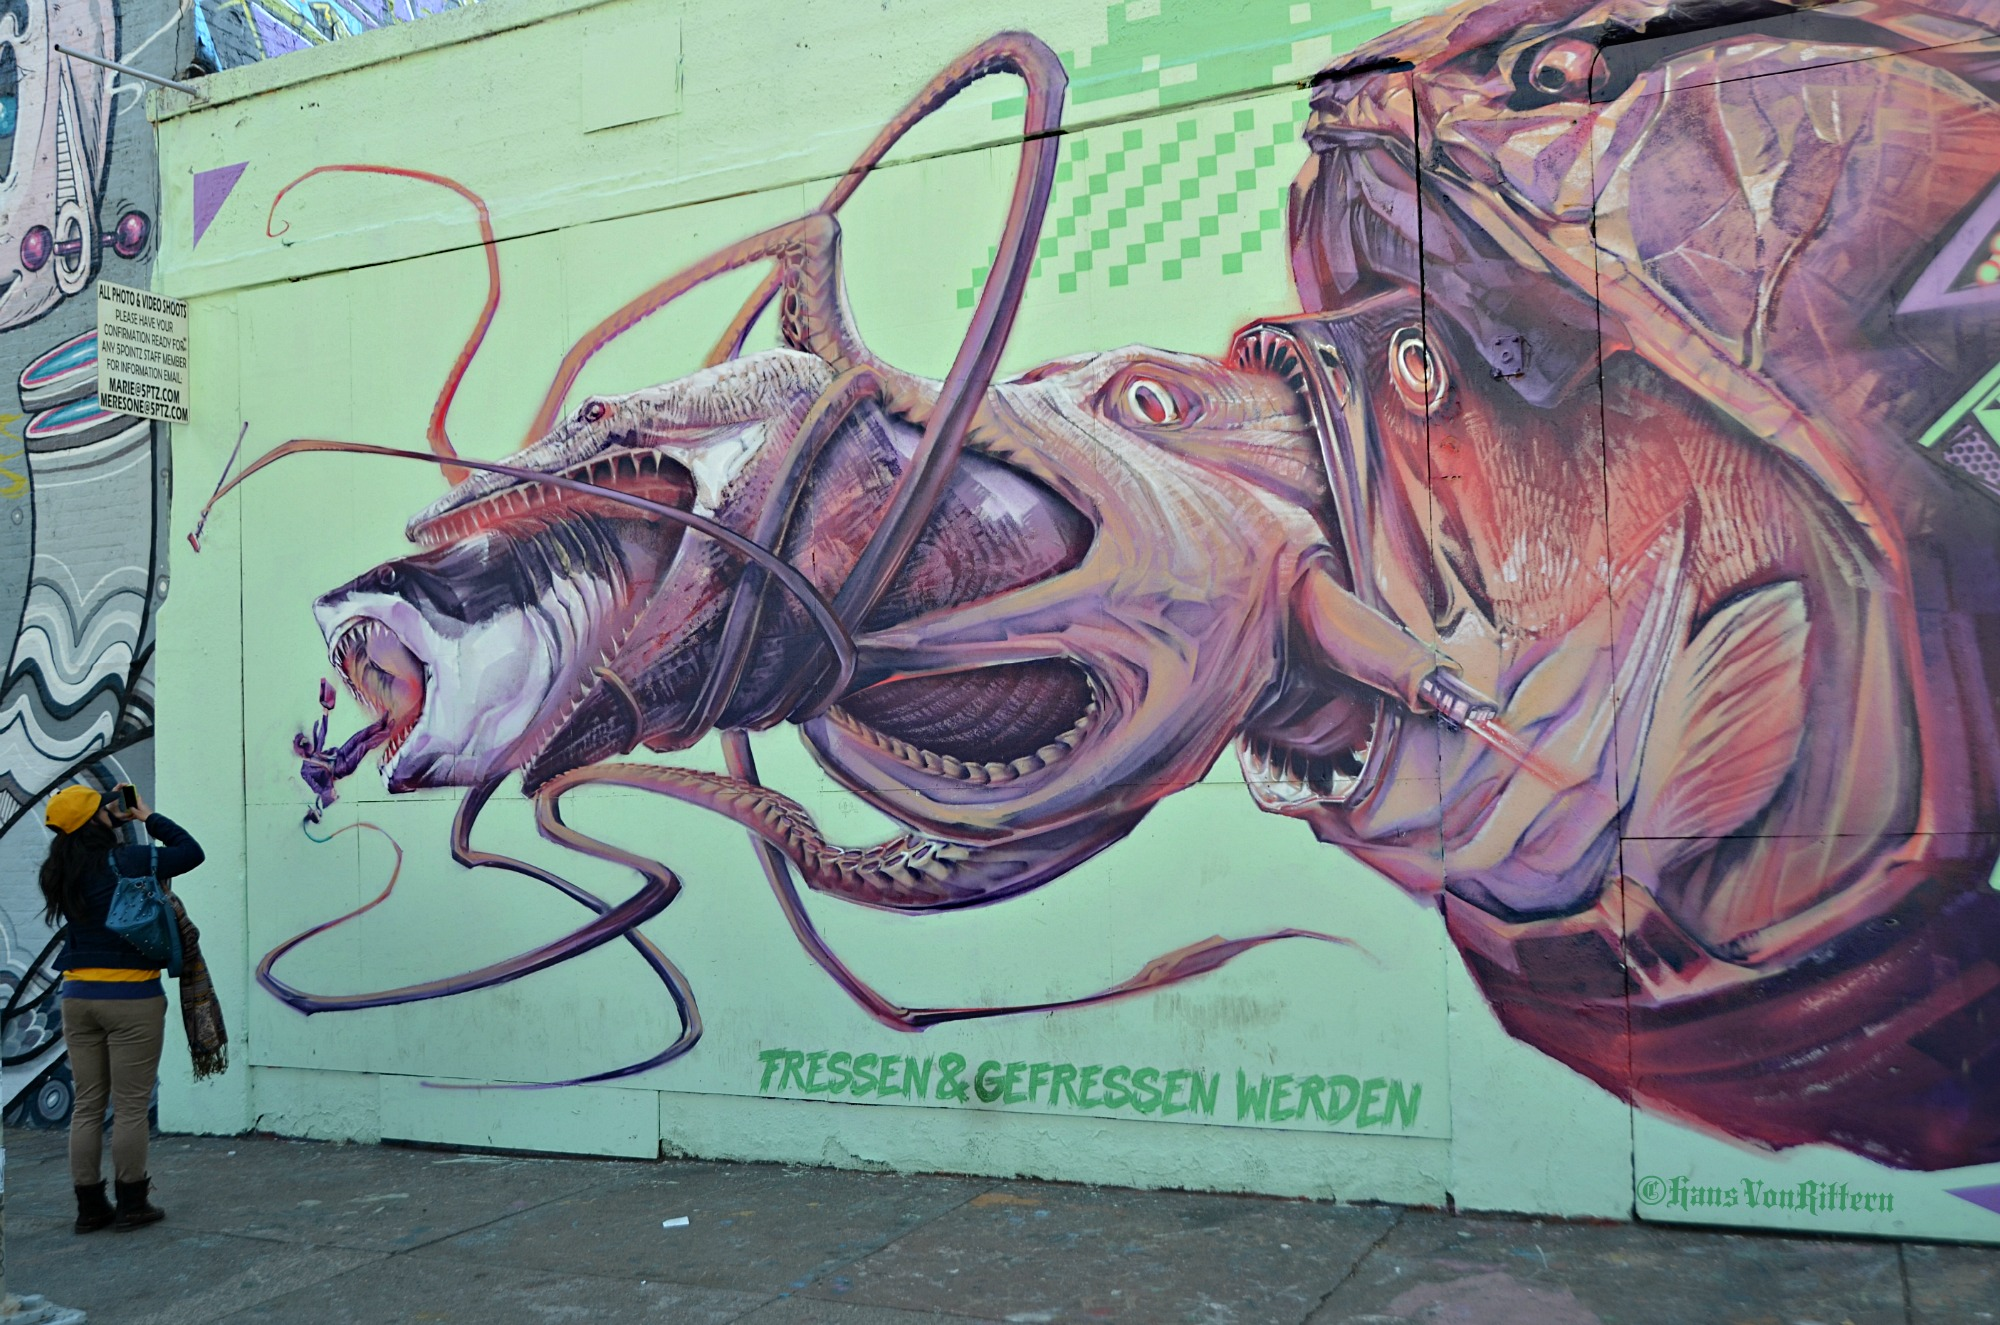 3 Dimensional Graffiti Murals New York City In The Wit Of An Eye